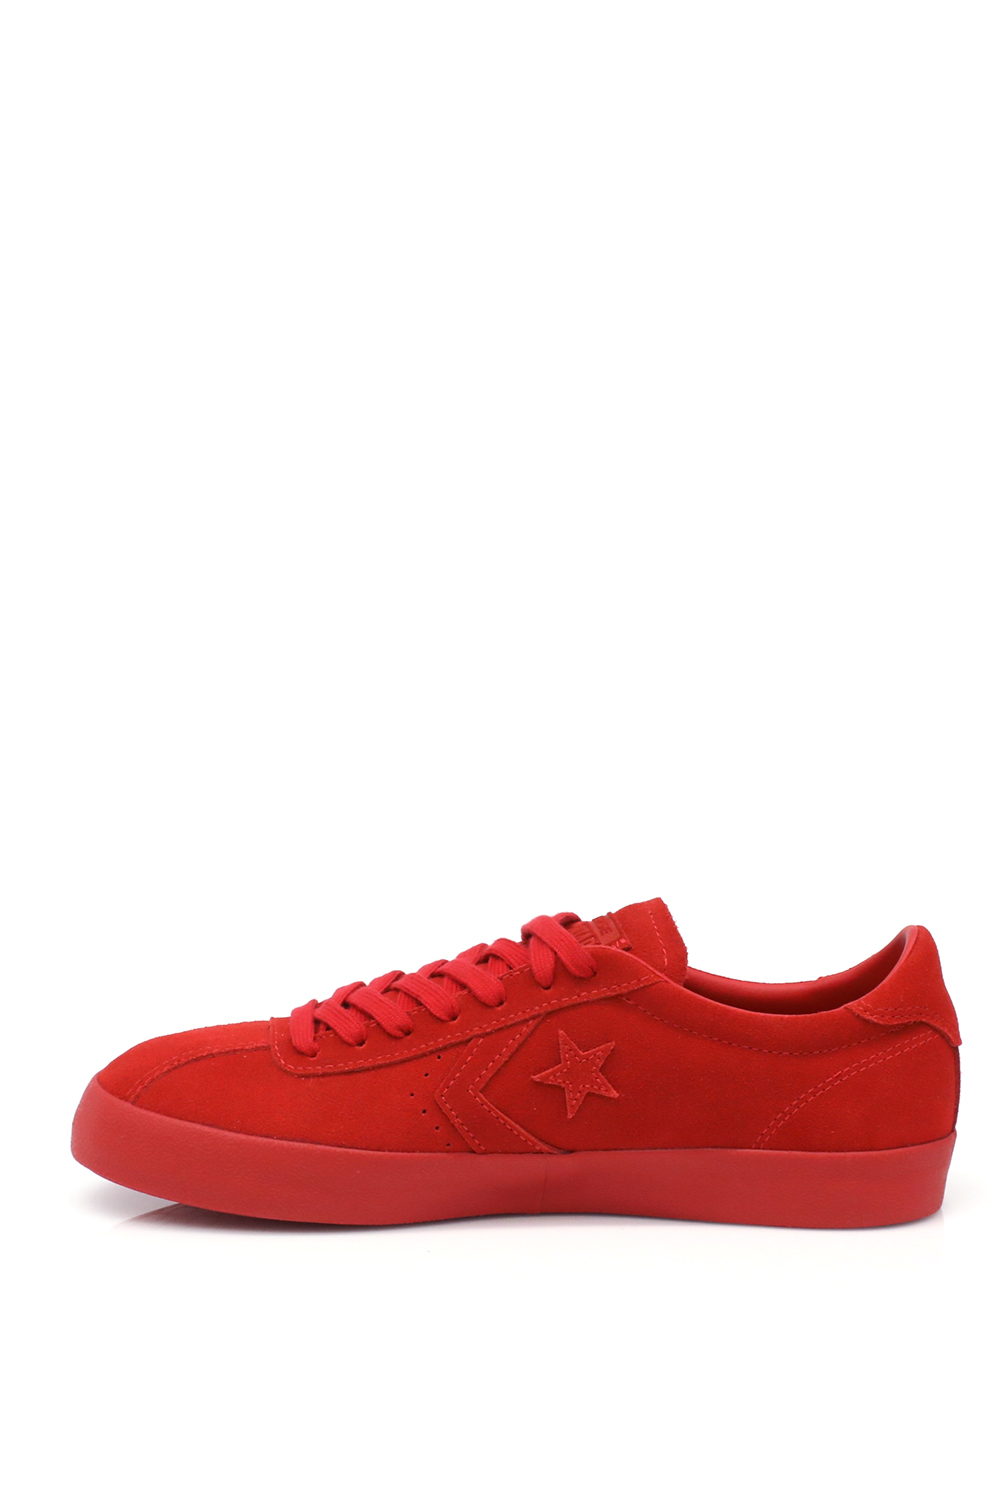 CONVERSE - Unisex Παπούτσια CONVERSE Breakpoint Ox Κόκκινα